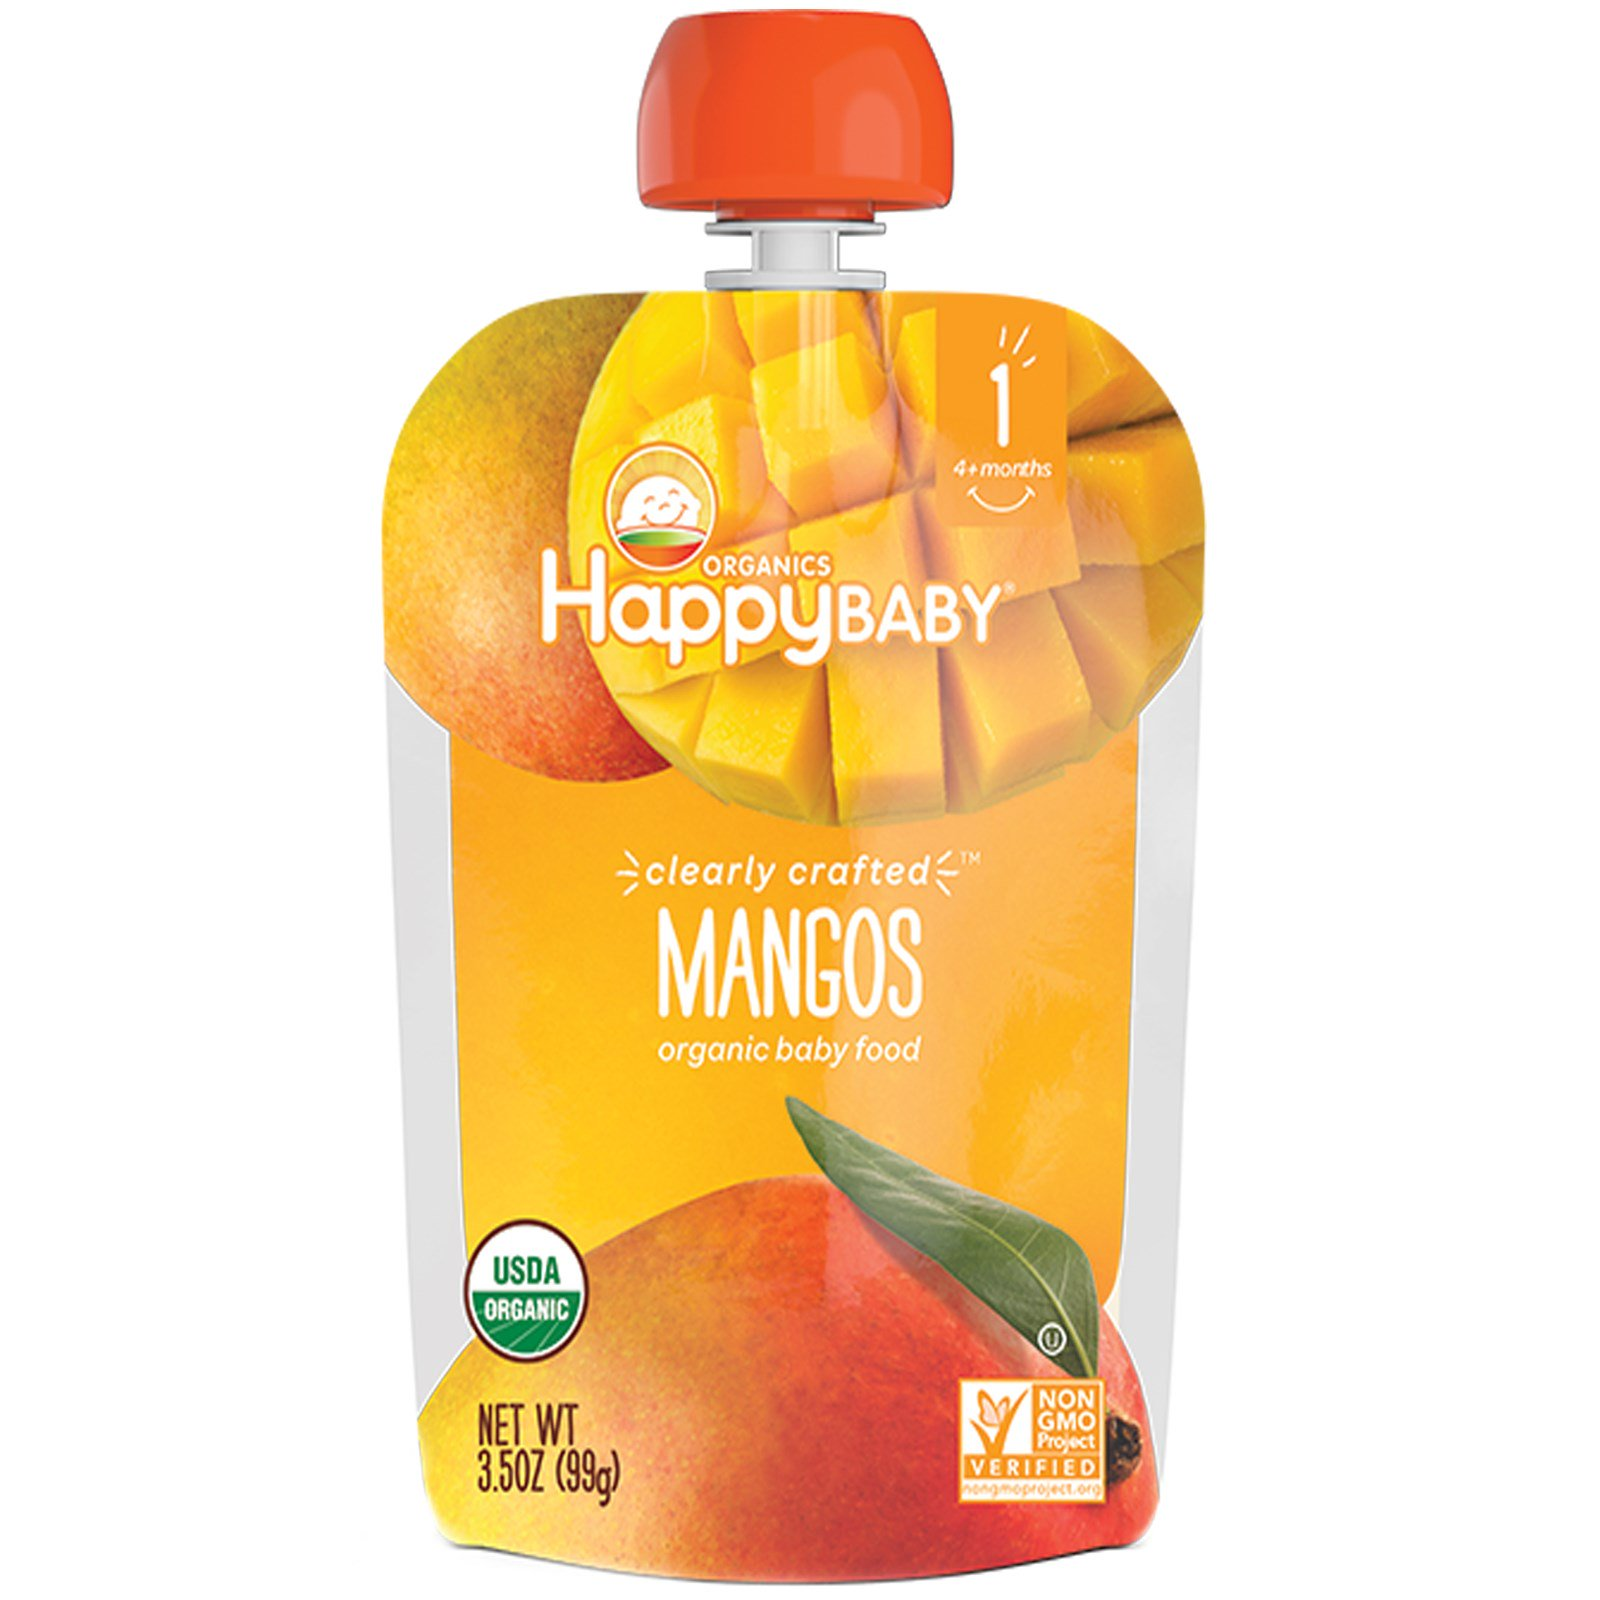 Nurture Inc. (Happy Baby), Organic Baby Food, Stage 1, Clearly Crafted, Mangos, 4 + Months, 3.5 oz (pack of 2)